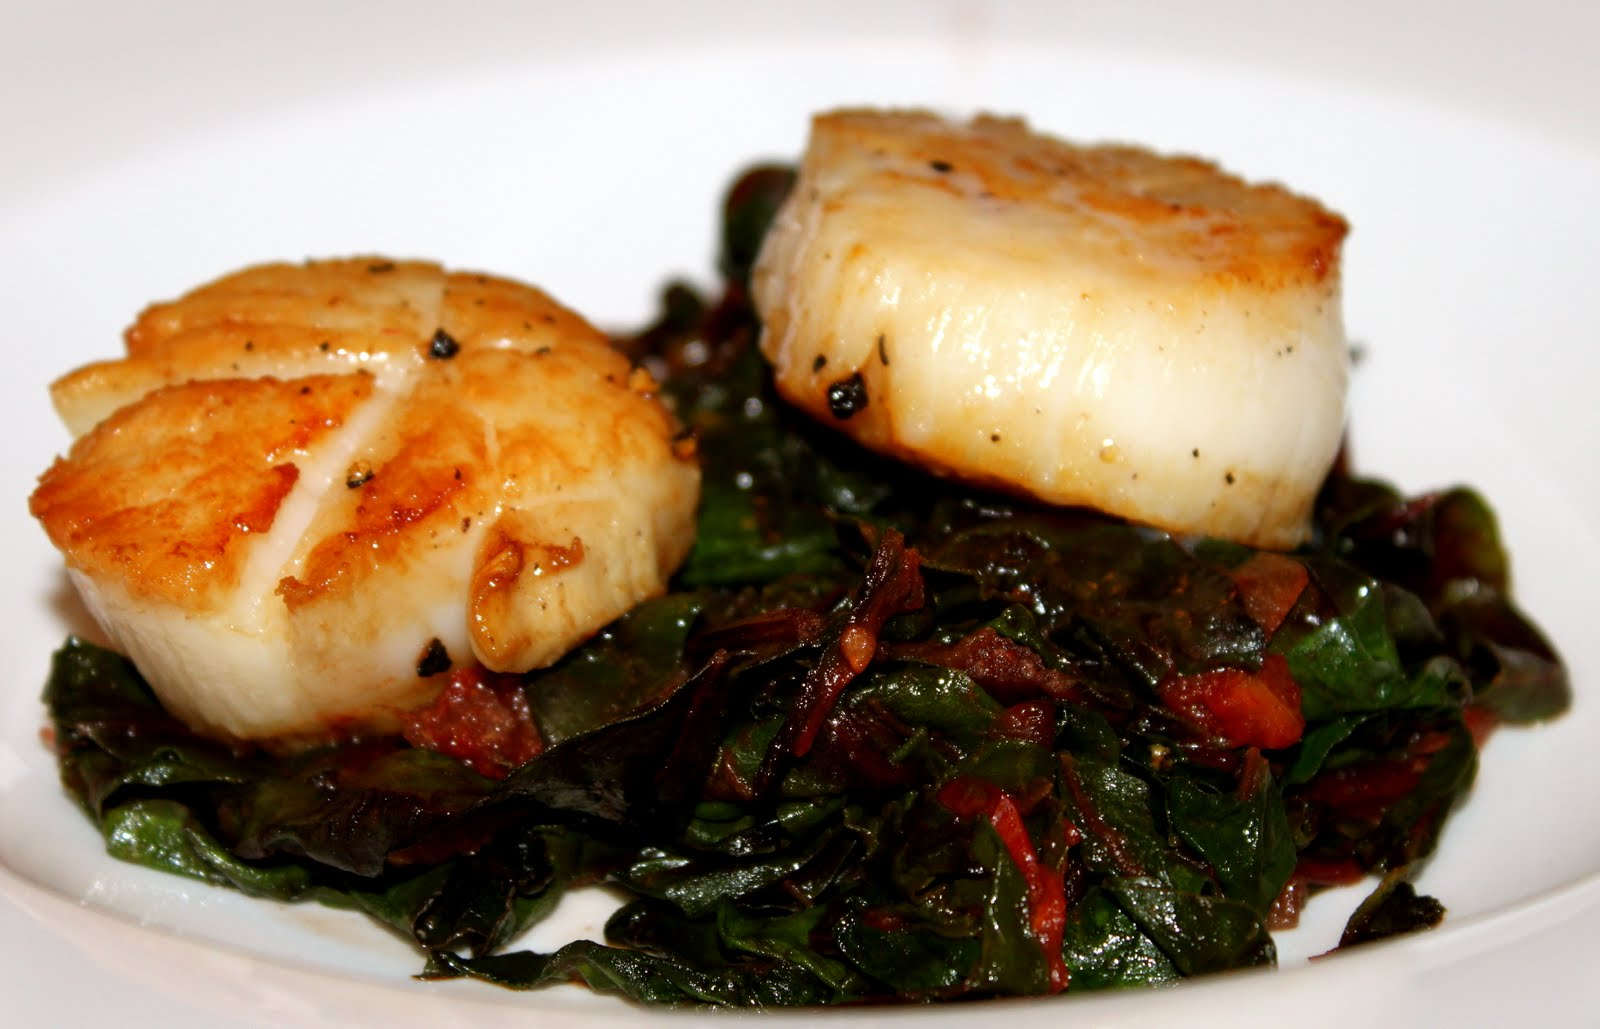 Piccante Dolce: Seared Scallops with Bacon Braised Chard